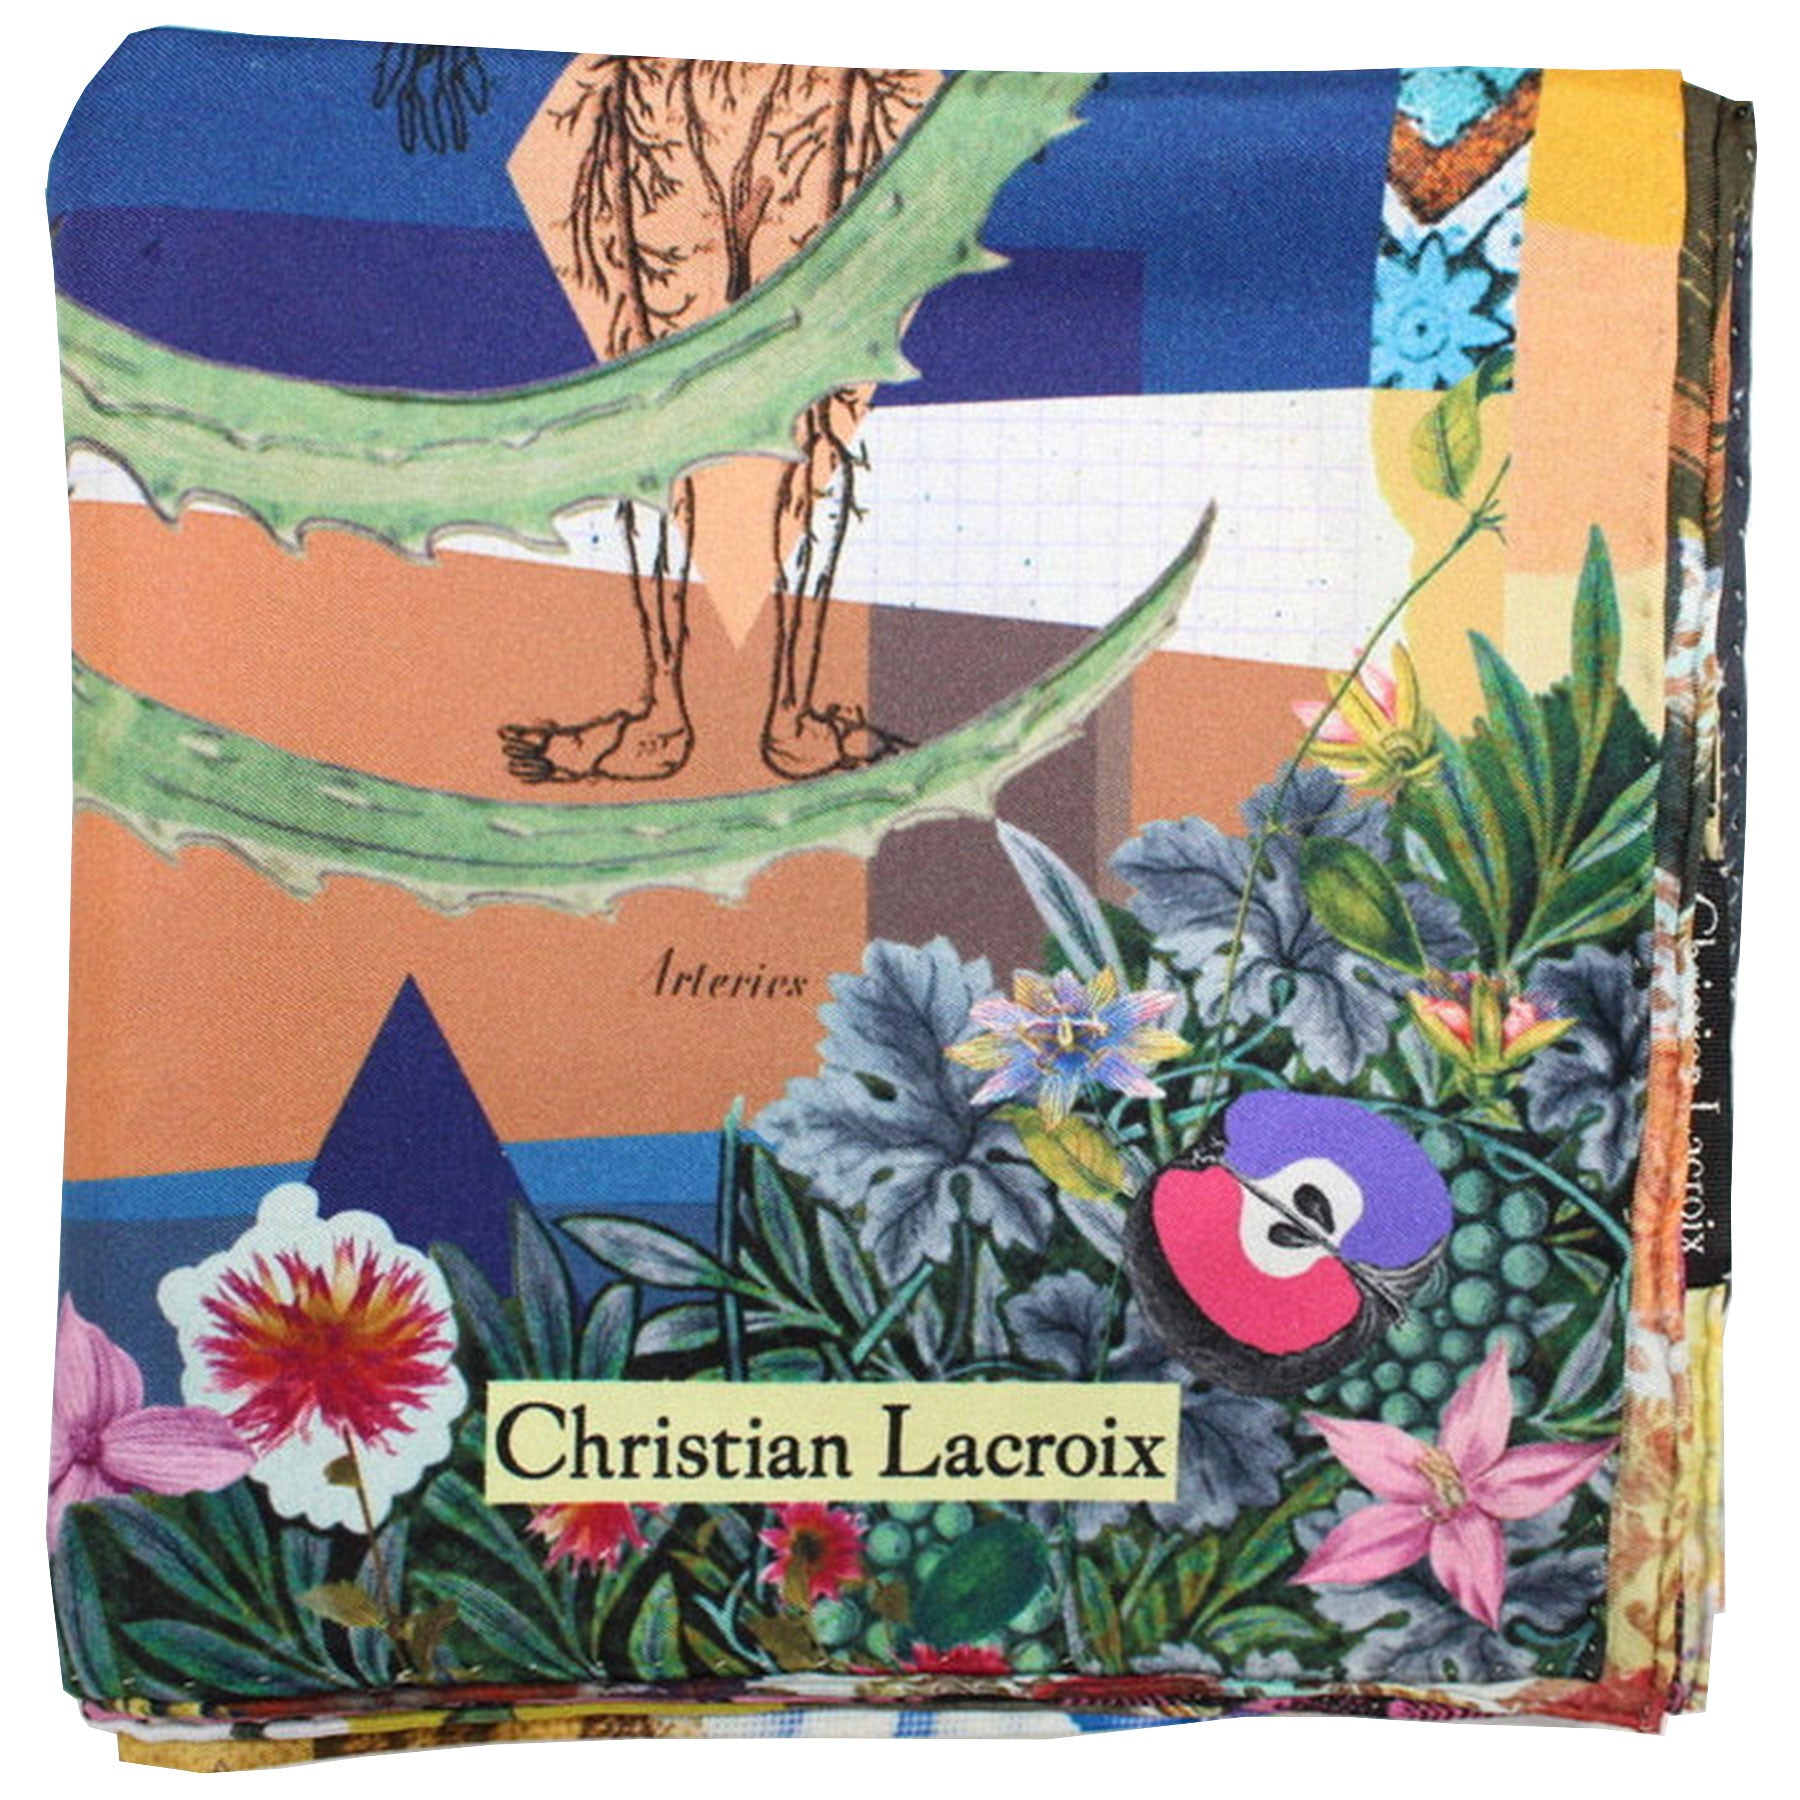 Christian Lacroix Scarf Arteries design - Large Twill Silk Square Scarf